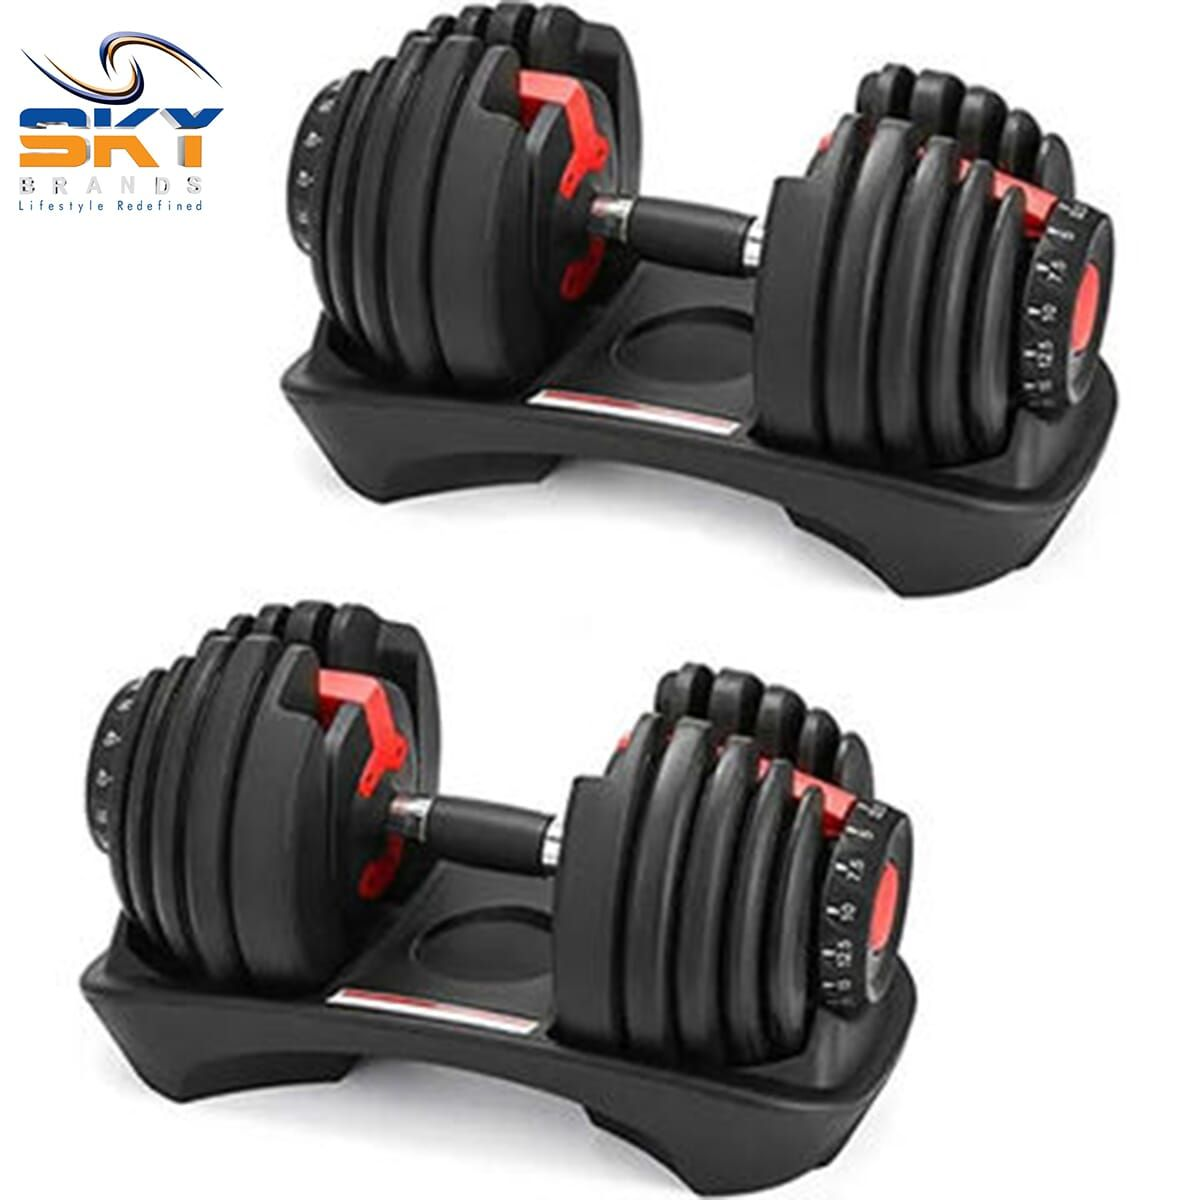 Adjustable Dumbbell Weights – 24kg (Pair)